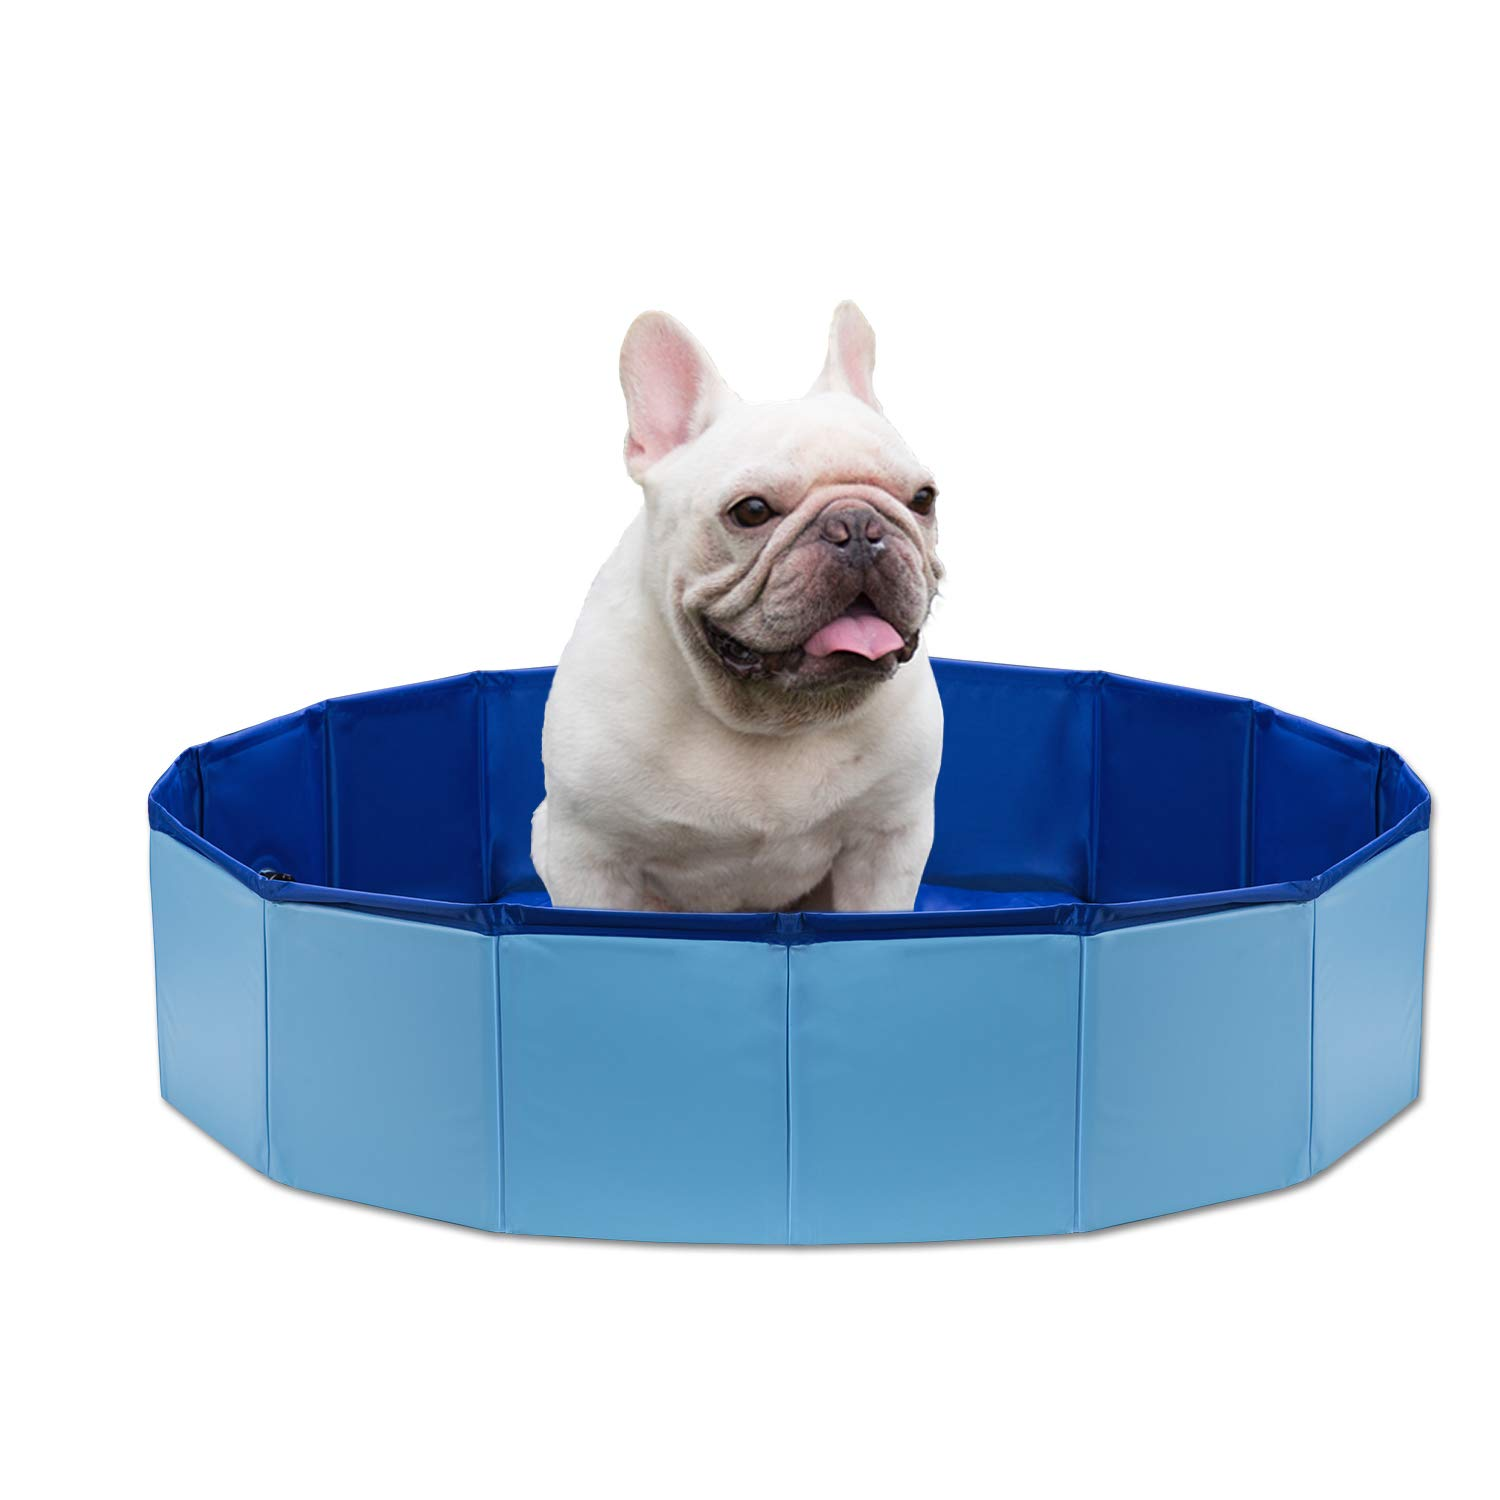 NHILES Portable Pet Dog Swimming Pool, Collapsible Bathing Tub, Indoor & Outdoor Foldable Leakproof Cat Dog Pet SPA, Medium & Small Sized Dog